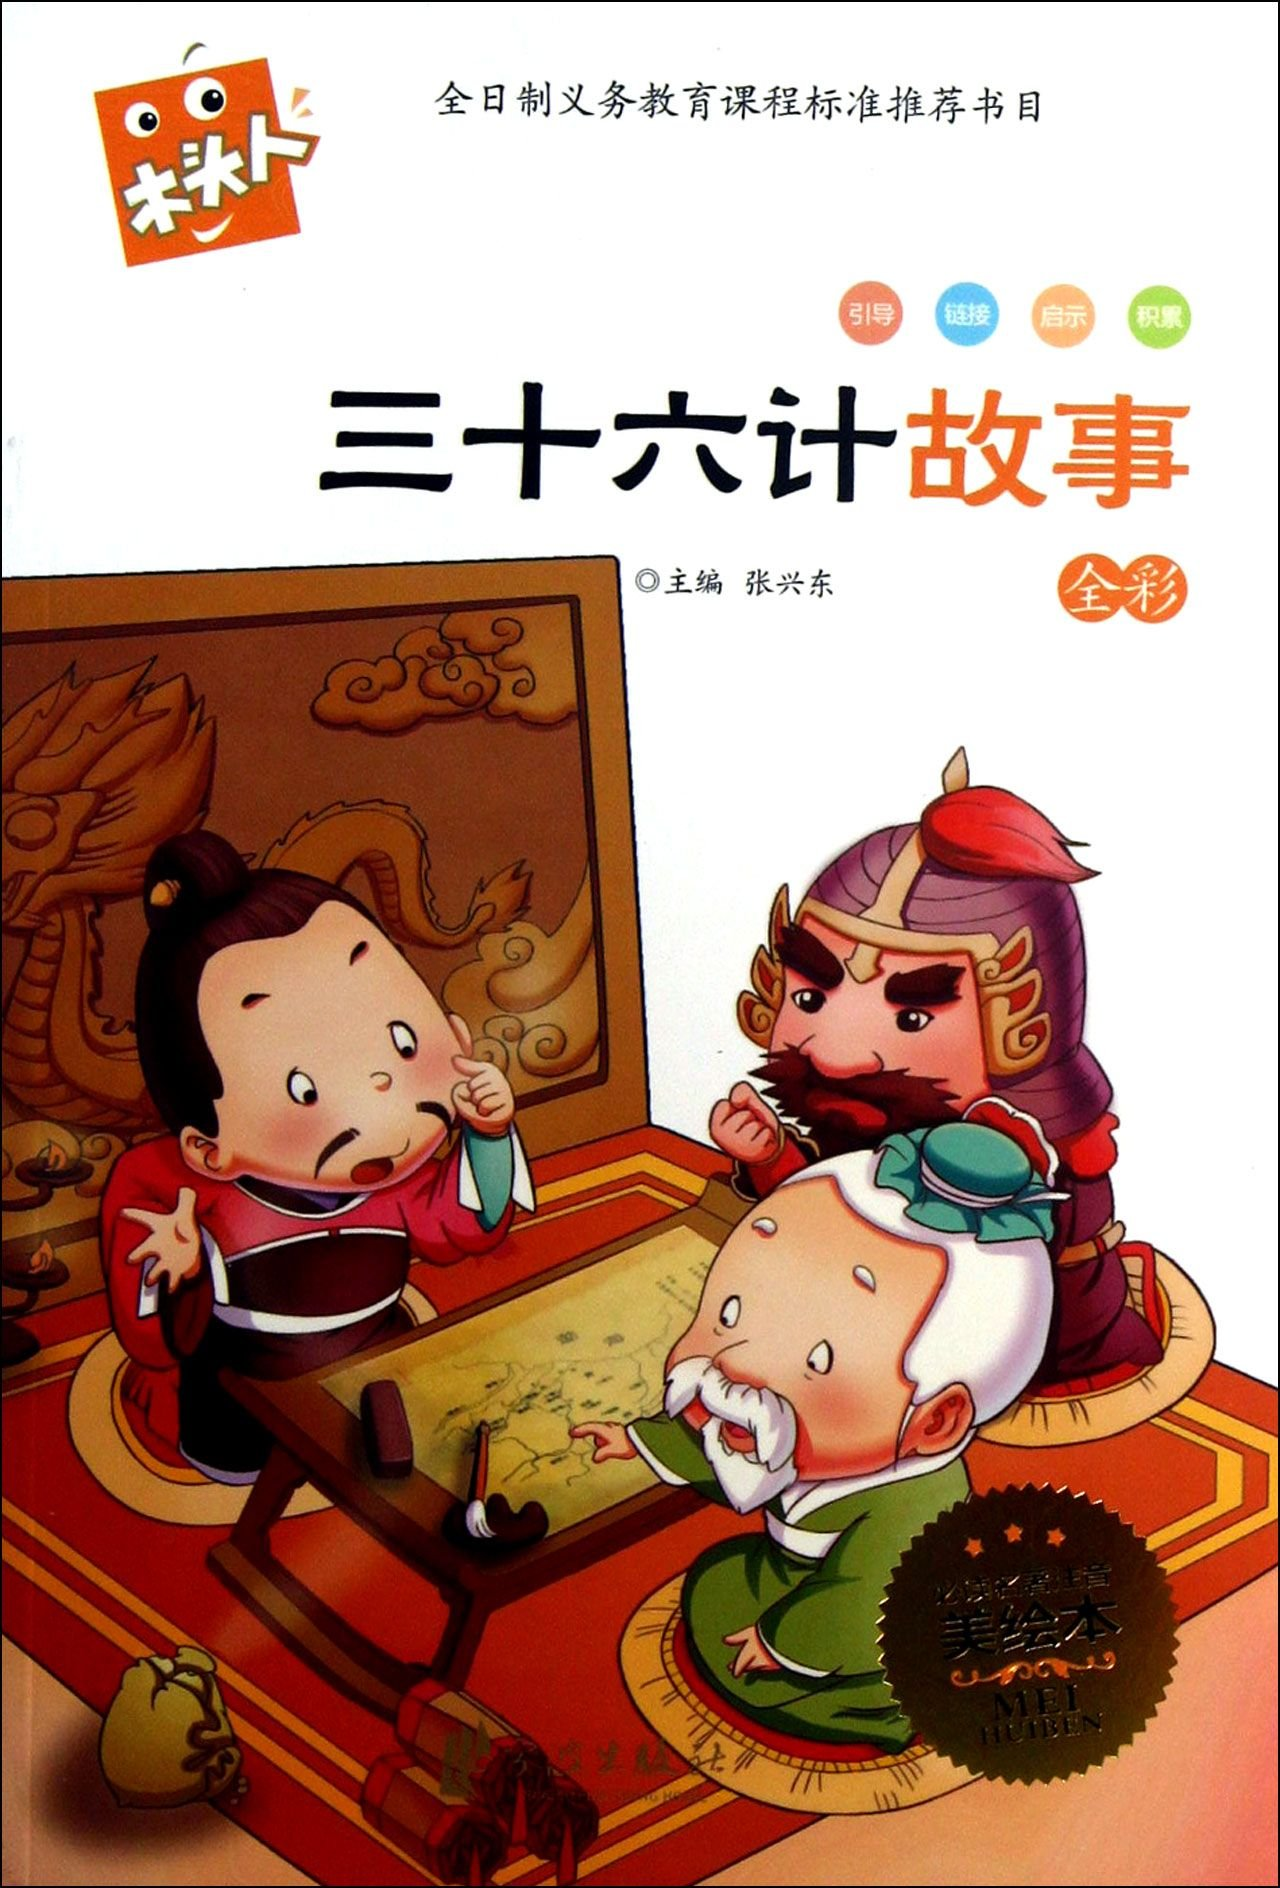 Download Stories of 36 strategies( Full-color Phonetic Books with Beautiful Pictures ) (Chinese Edition) pdf